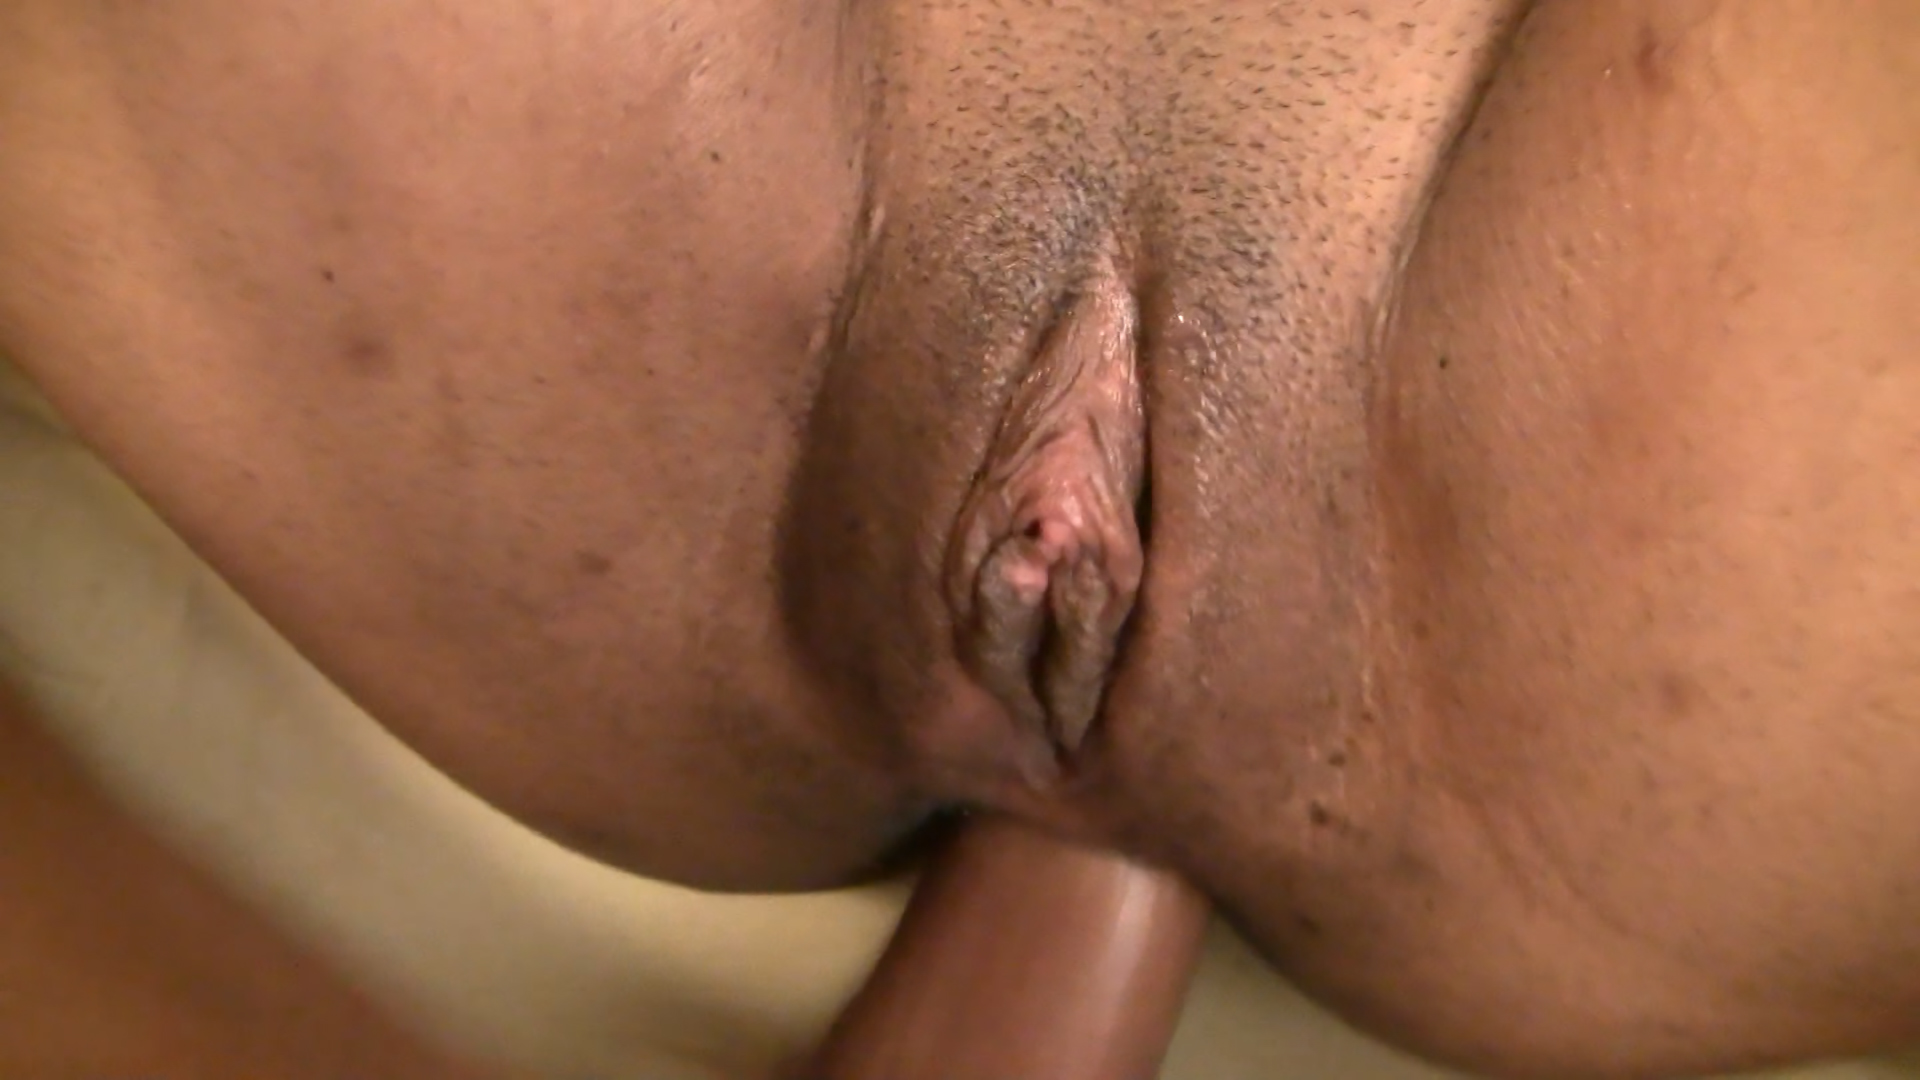 watch montana fishburne sex tape online